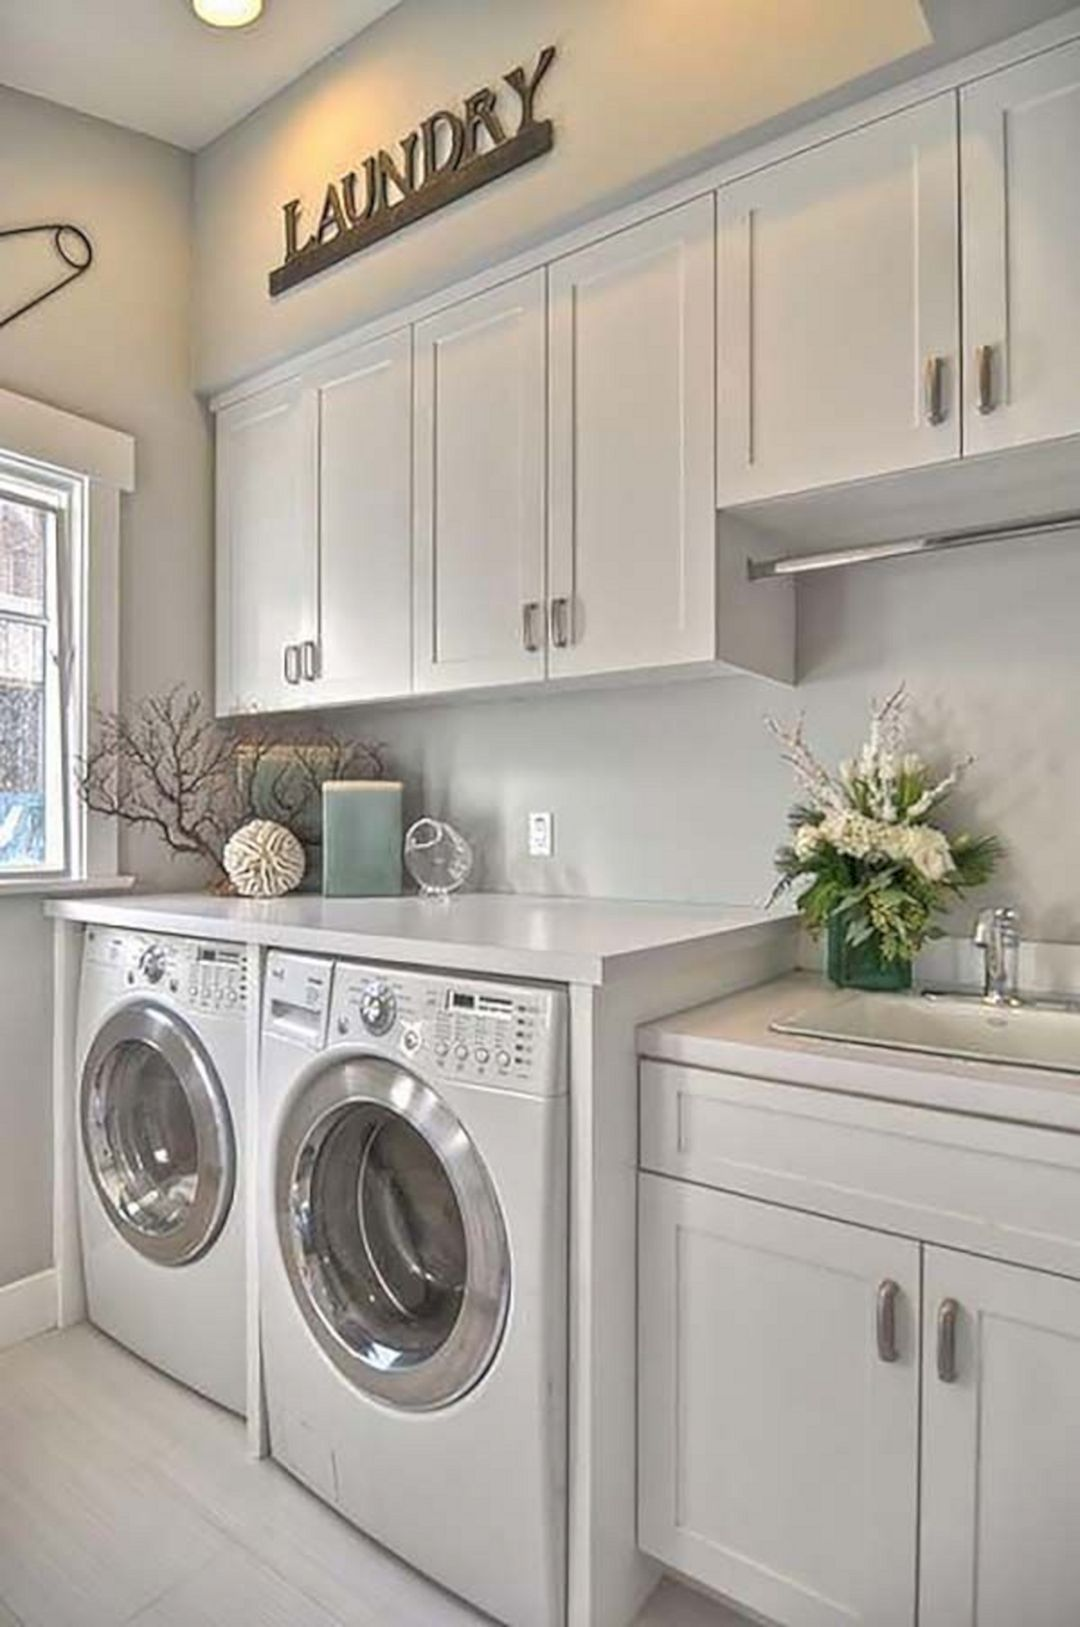 Beautiful Design Laundry Room Ideas in Your Home No 2 | Laundry ...